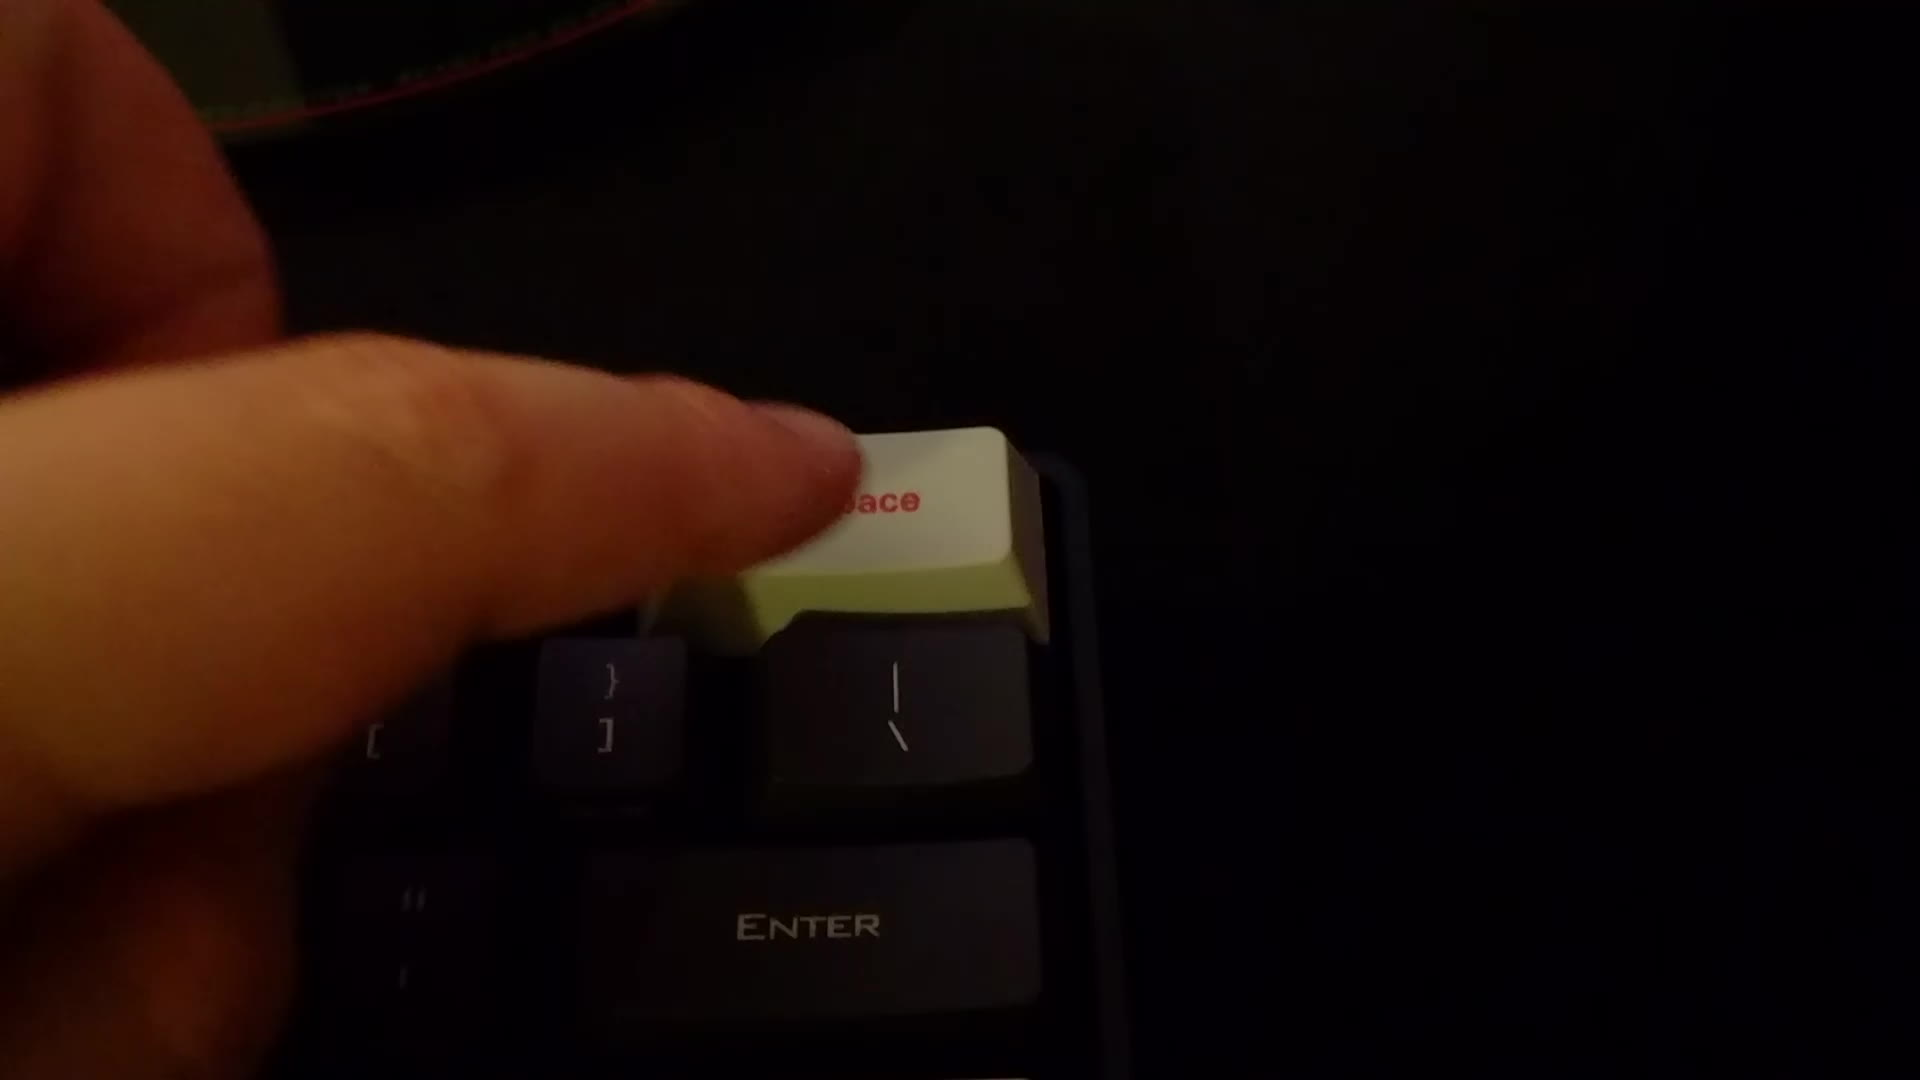 MechanicalKeyboards, IMSTOWorking GIFs